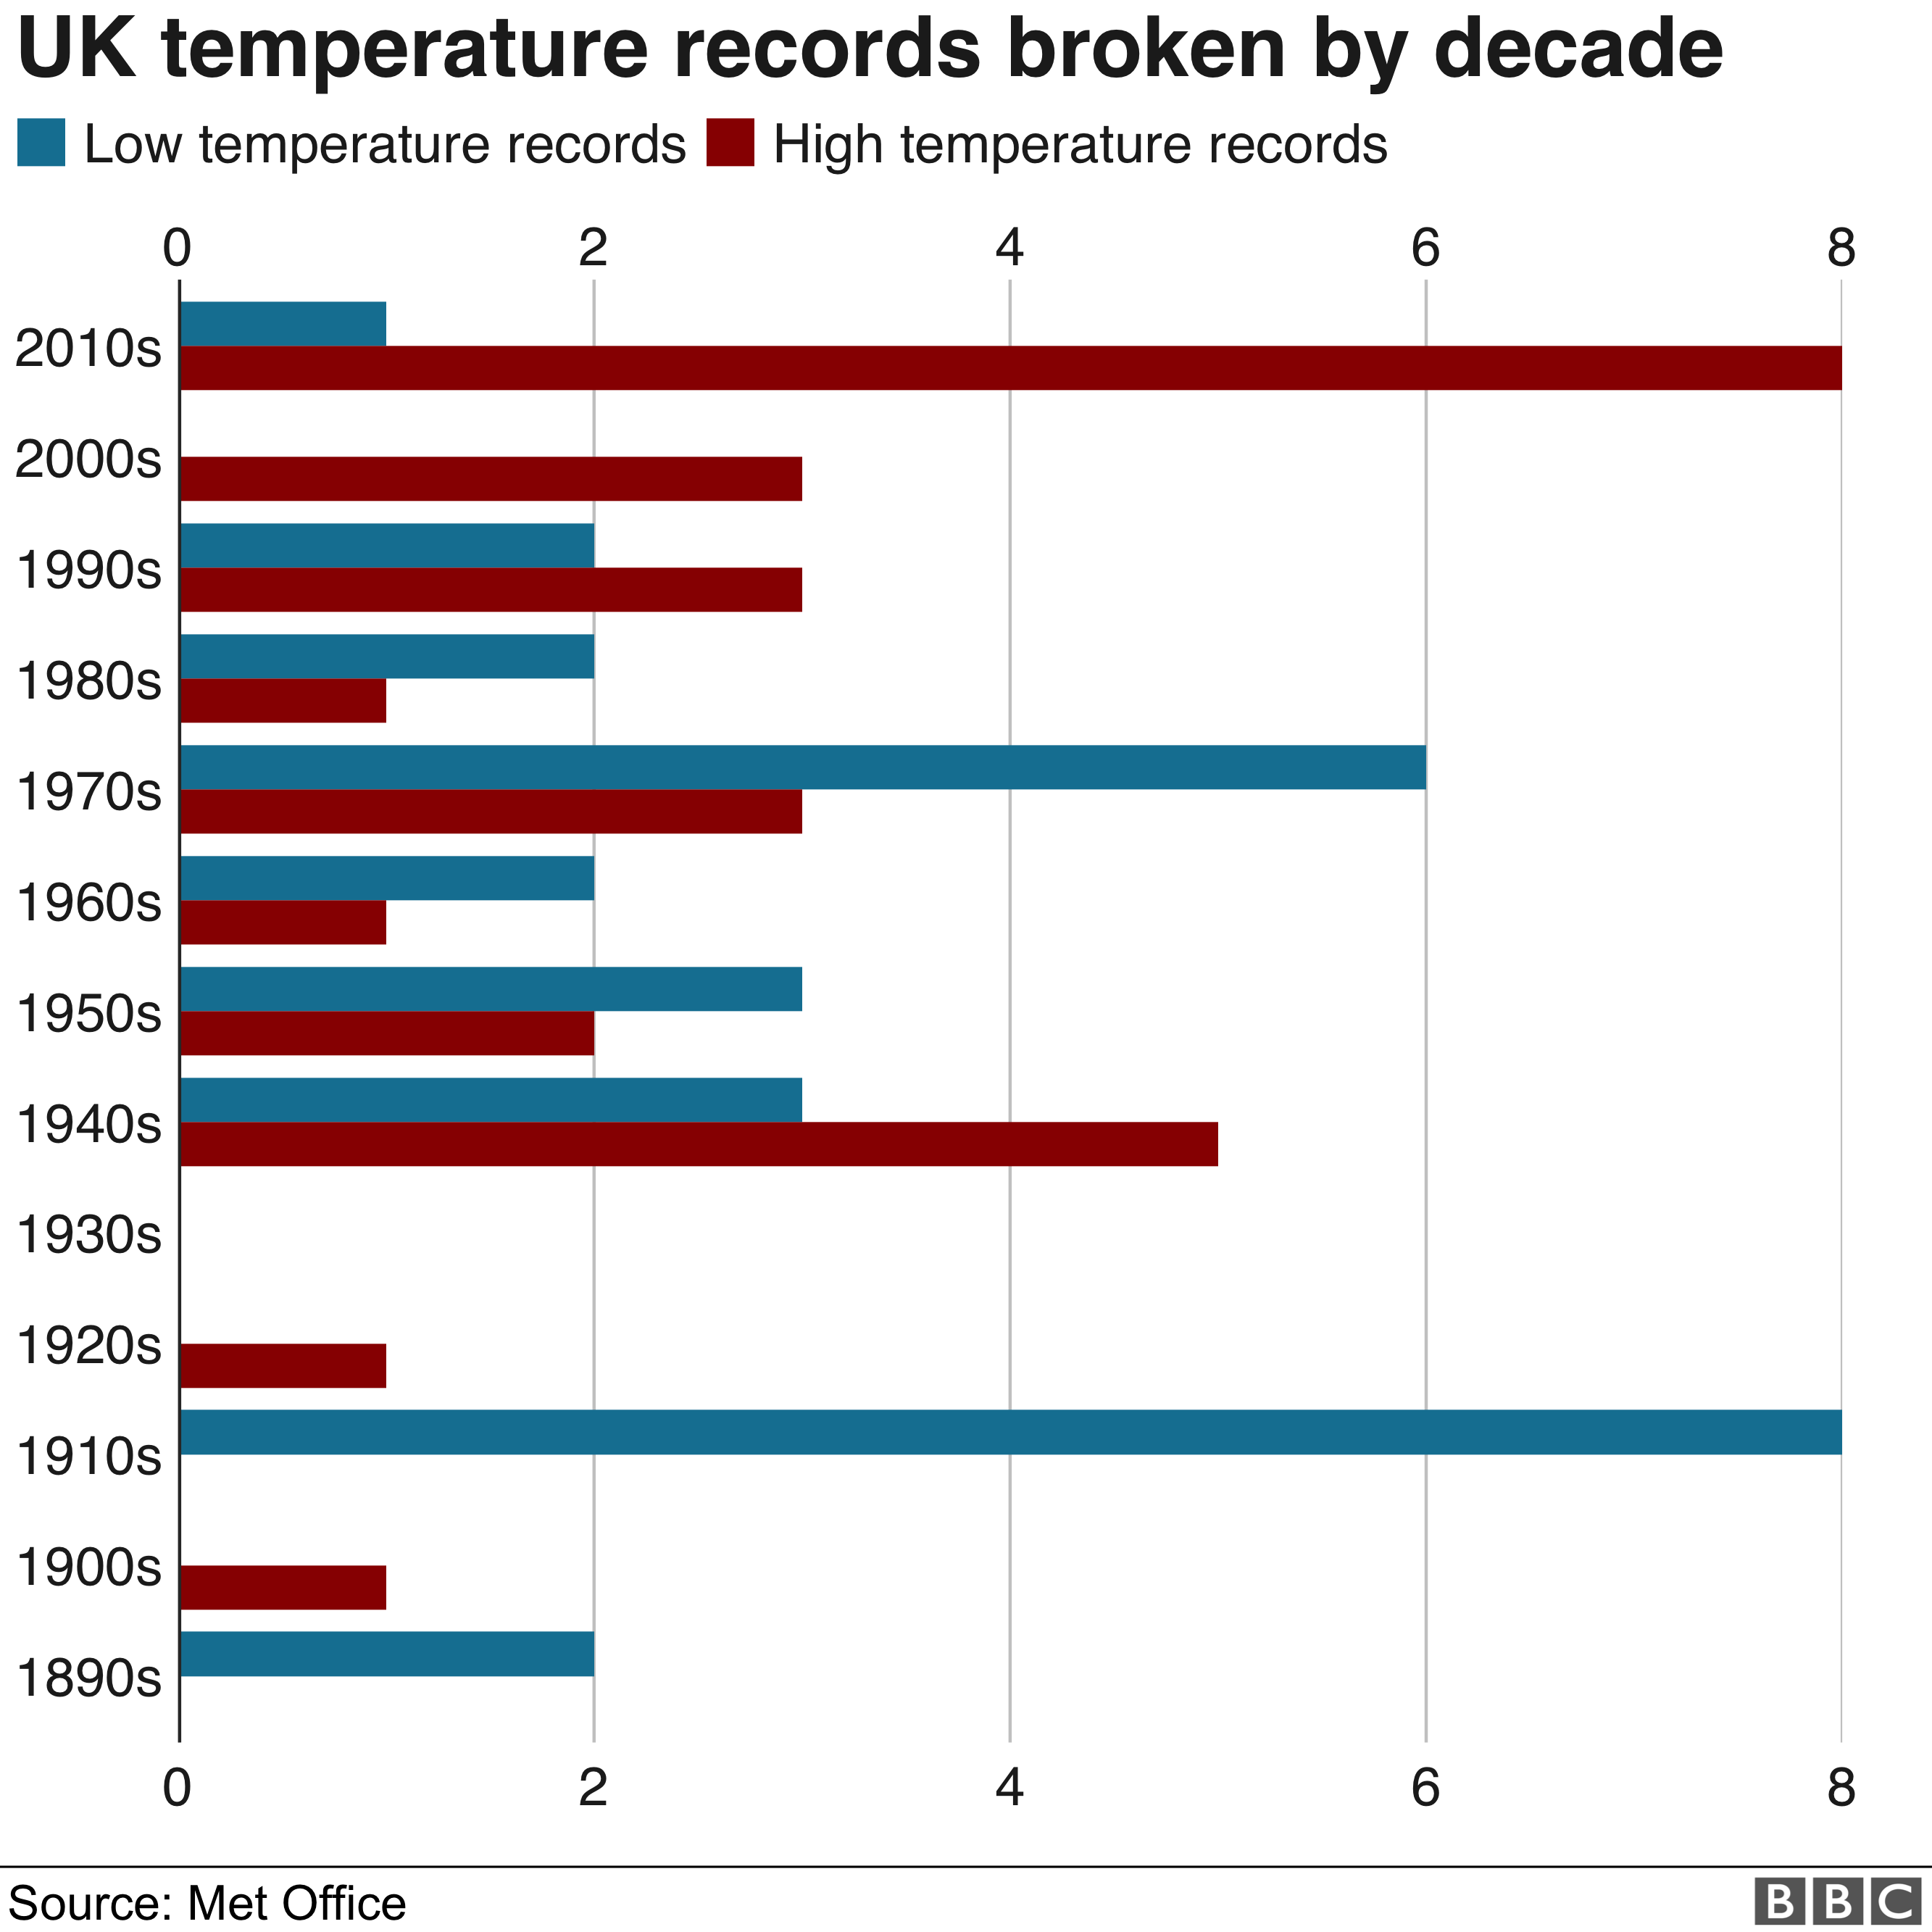 Chart showing the number of UK temperature records broken by decade